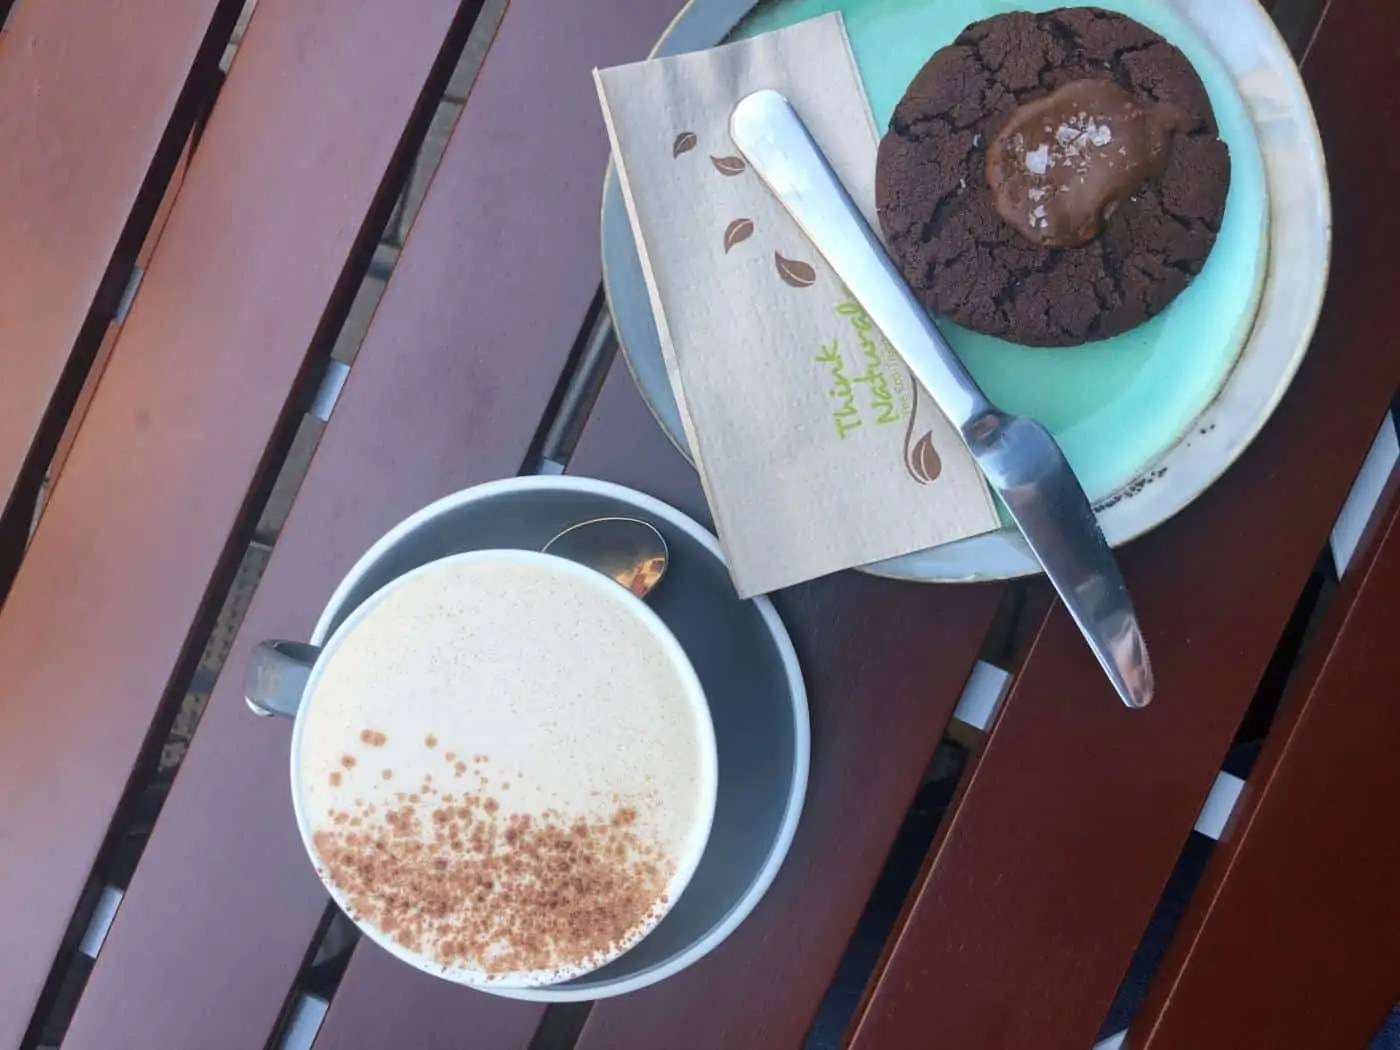 Chai and Chocolate cookie from The Little Lane Coffee Company in Galway Ireland